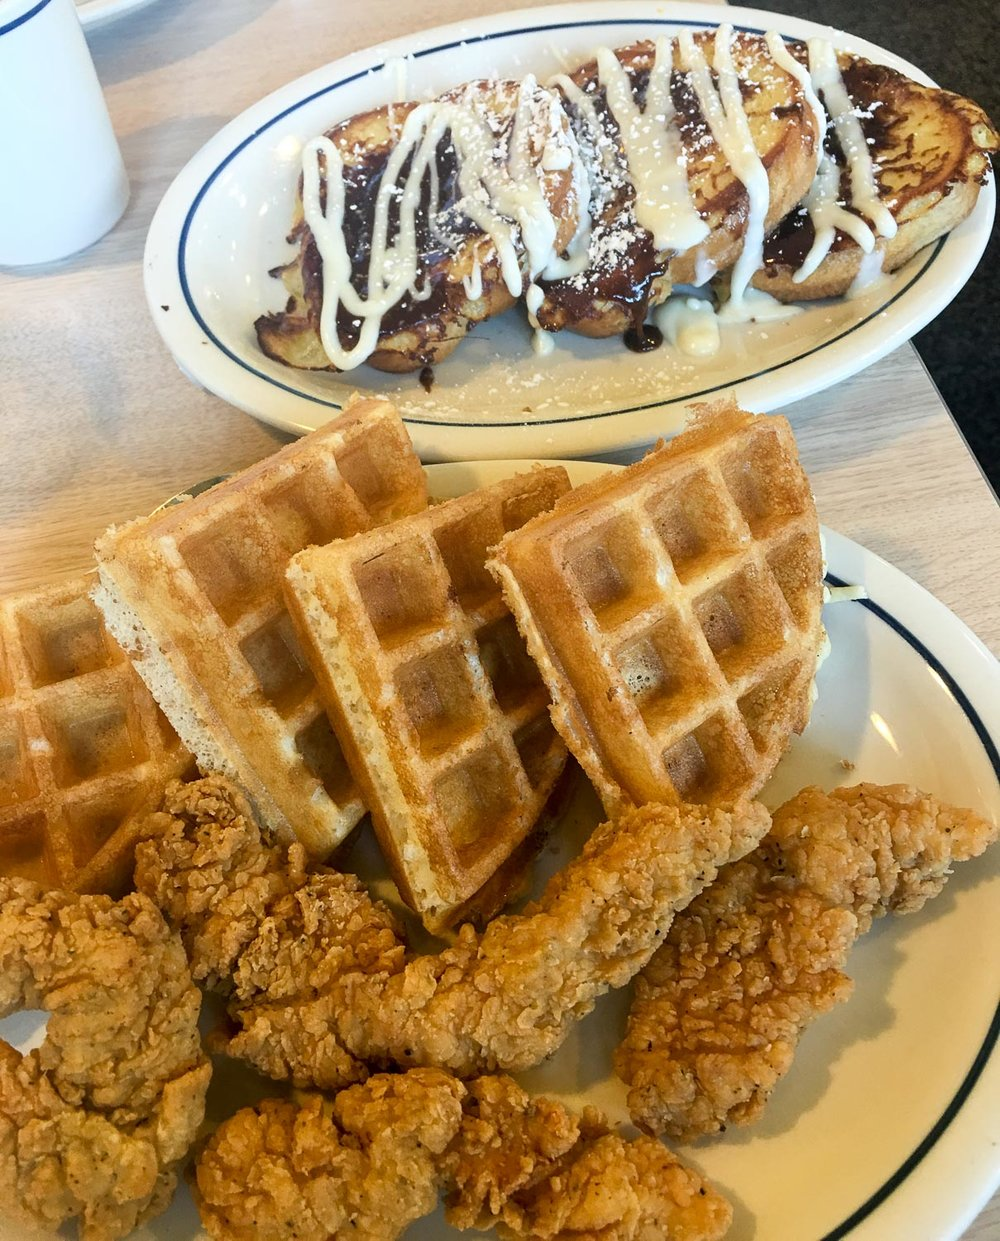 Chicken & Waffles with Cinnamon French Toast, iHOP (A must in my eyes)